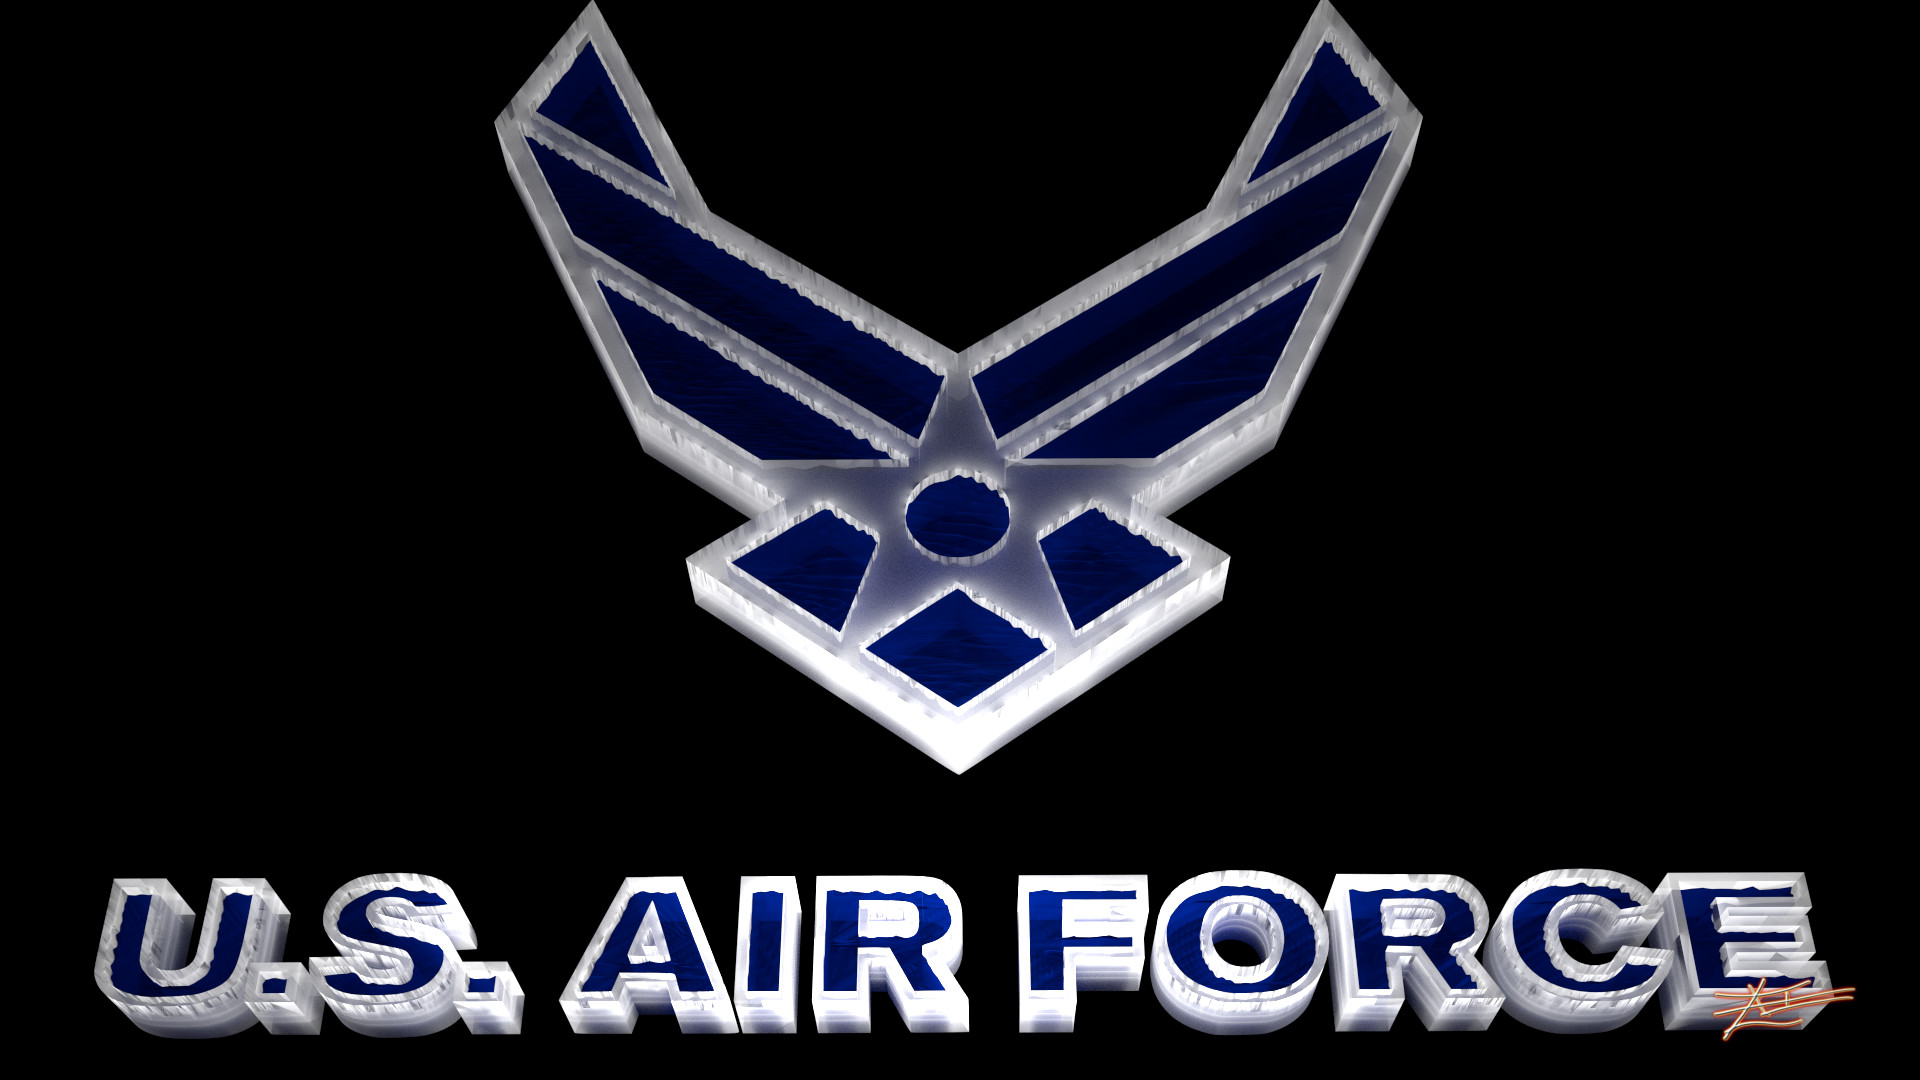 Group Of Air Force Logo Wallpaper 1920x1080